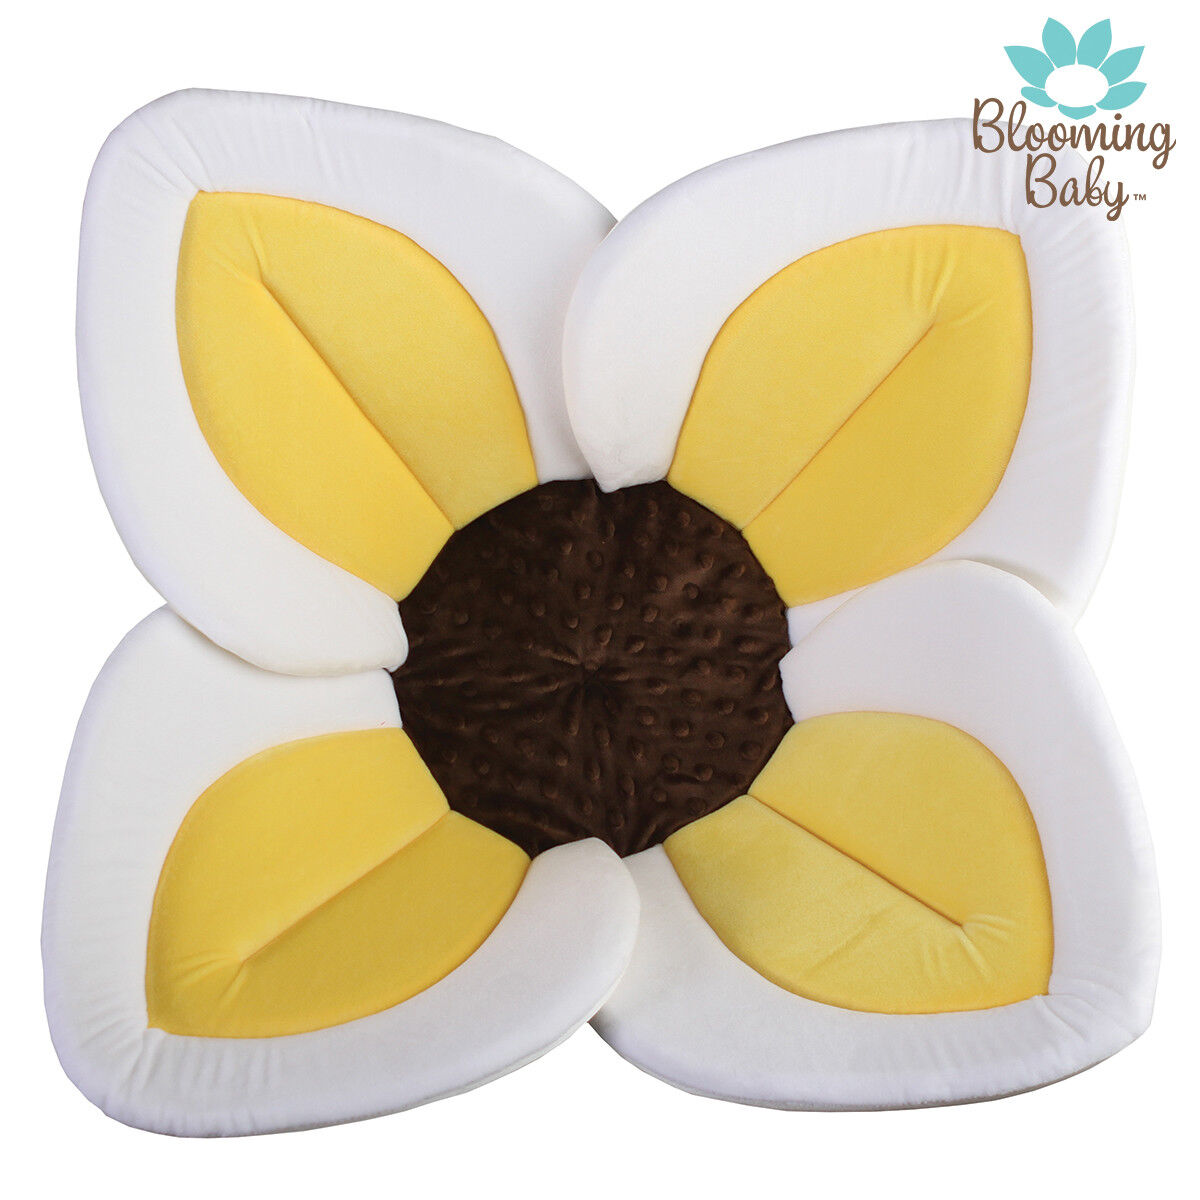 Blooming Bath Lotus Baby Bath, Package free, Bathing Mat, Fl